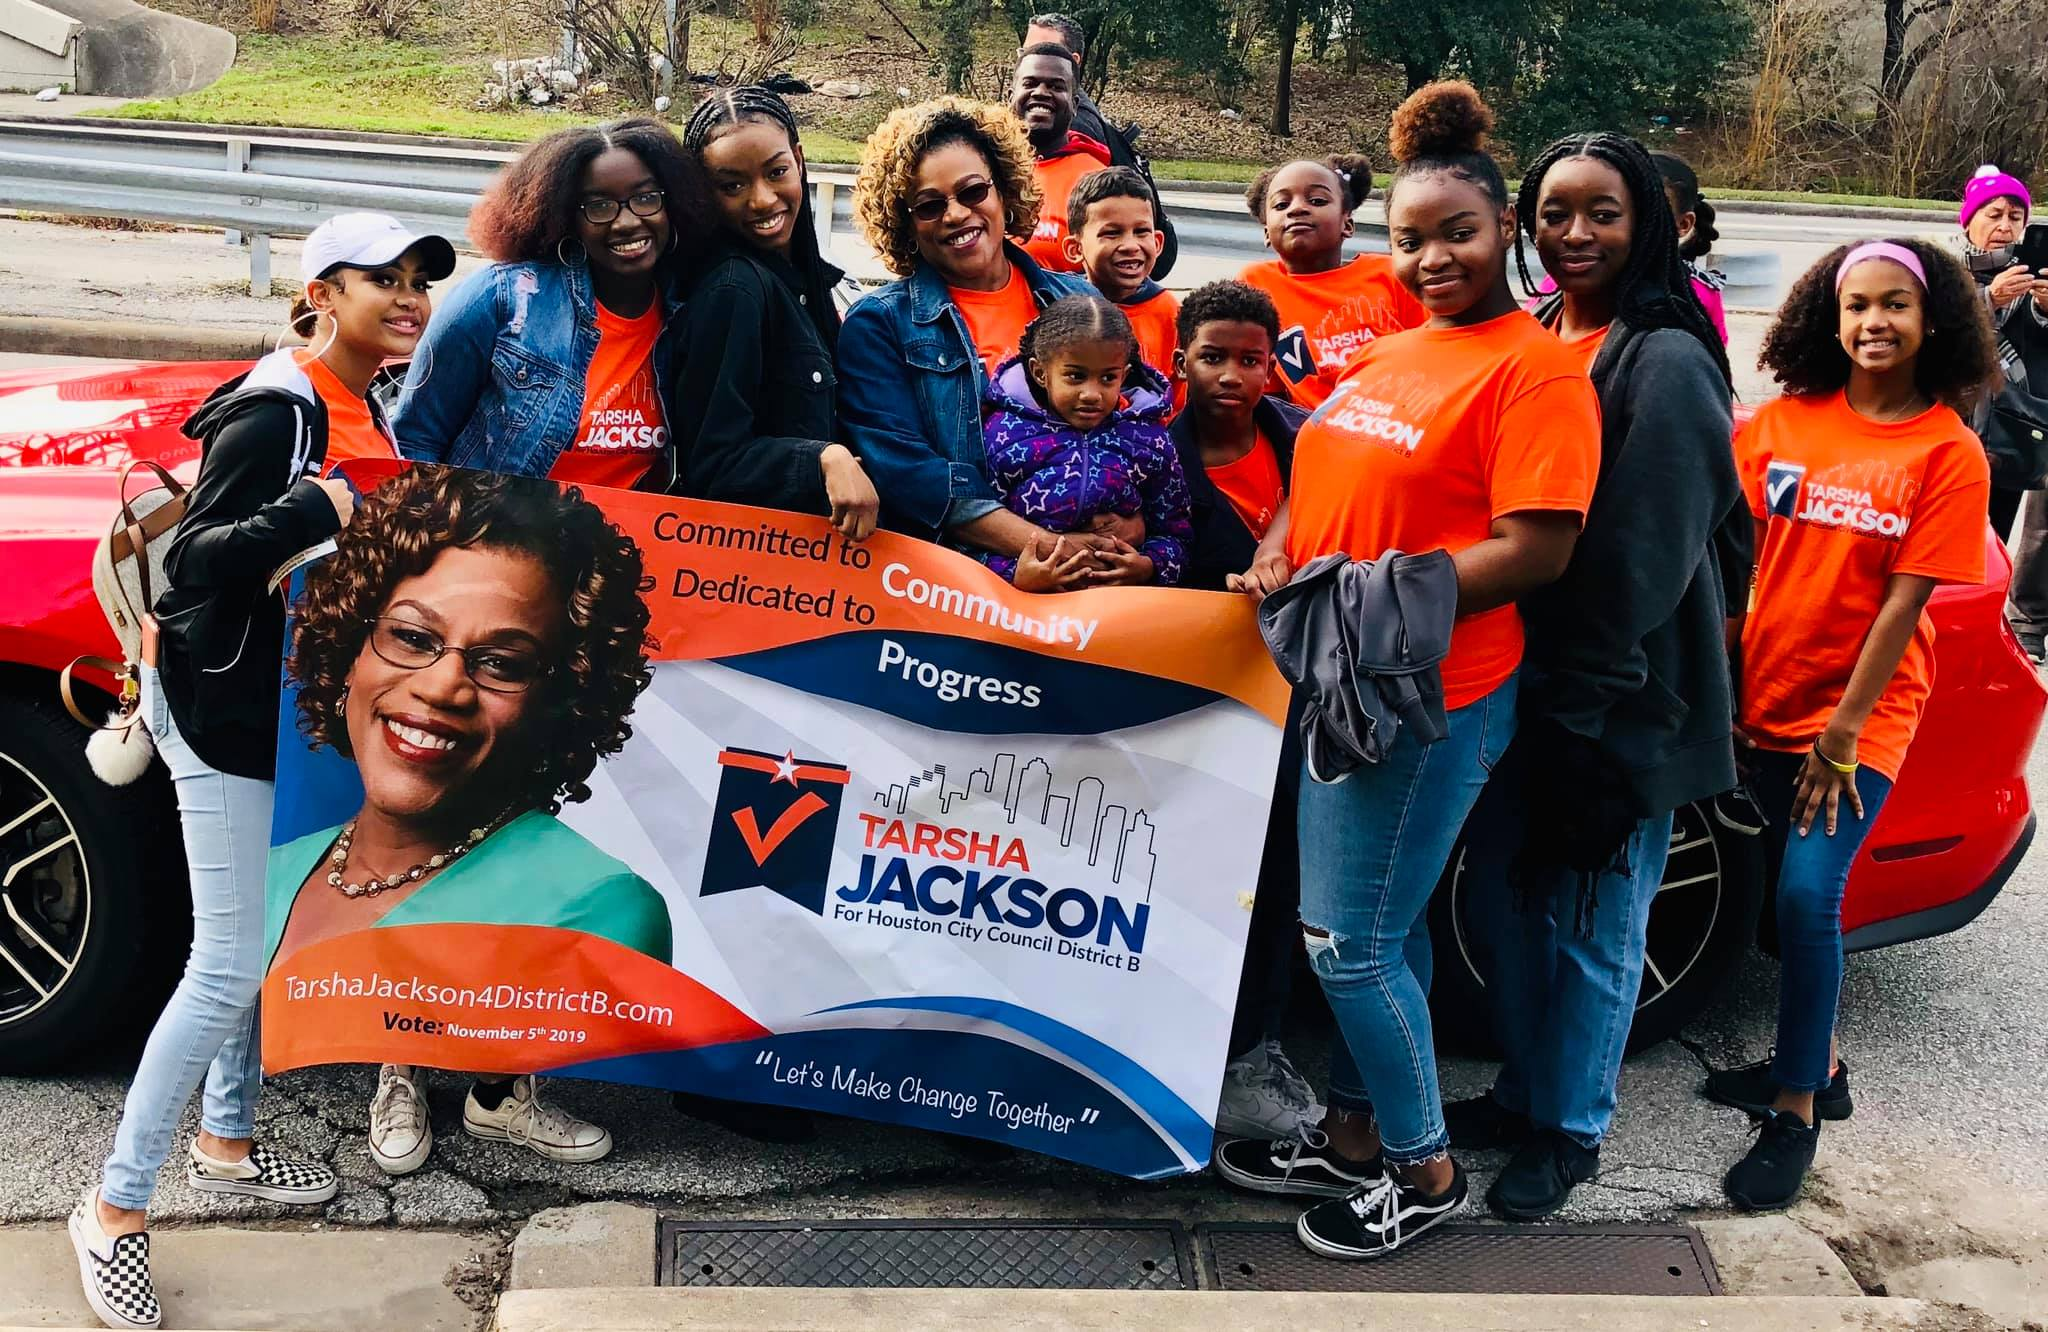 Tarsha Jackson, who is running for Houston City Council District B, is a longtime criminal justice organizer and vocally supported her opponent Cynthia Bailey in her fight to remain on the ballot despite having been convicted of a felony in the past.